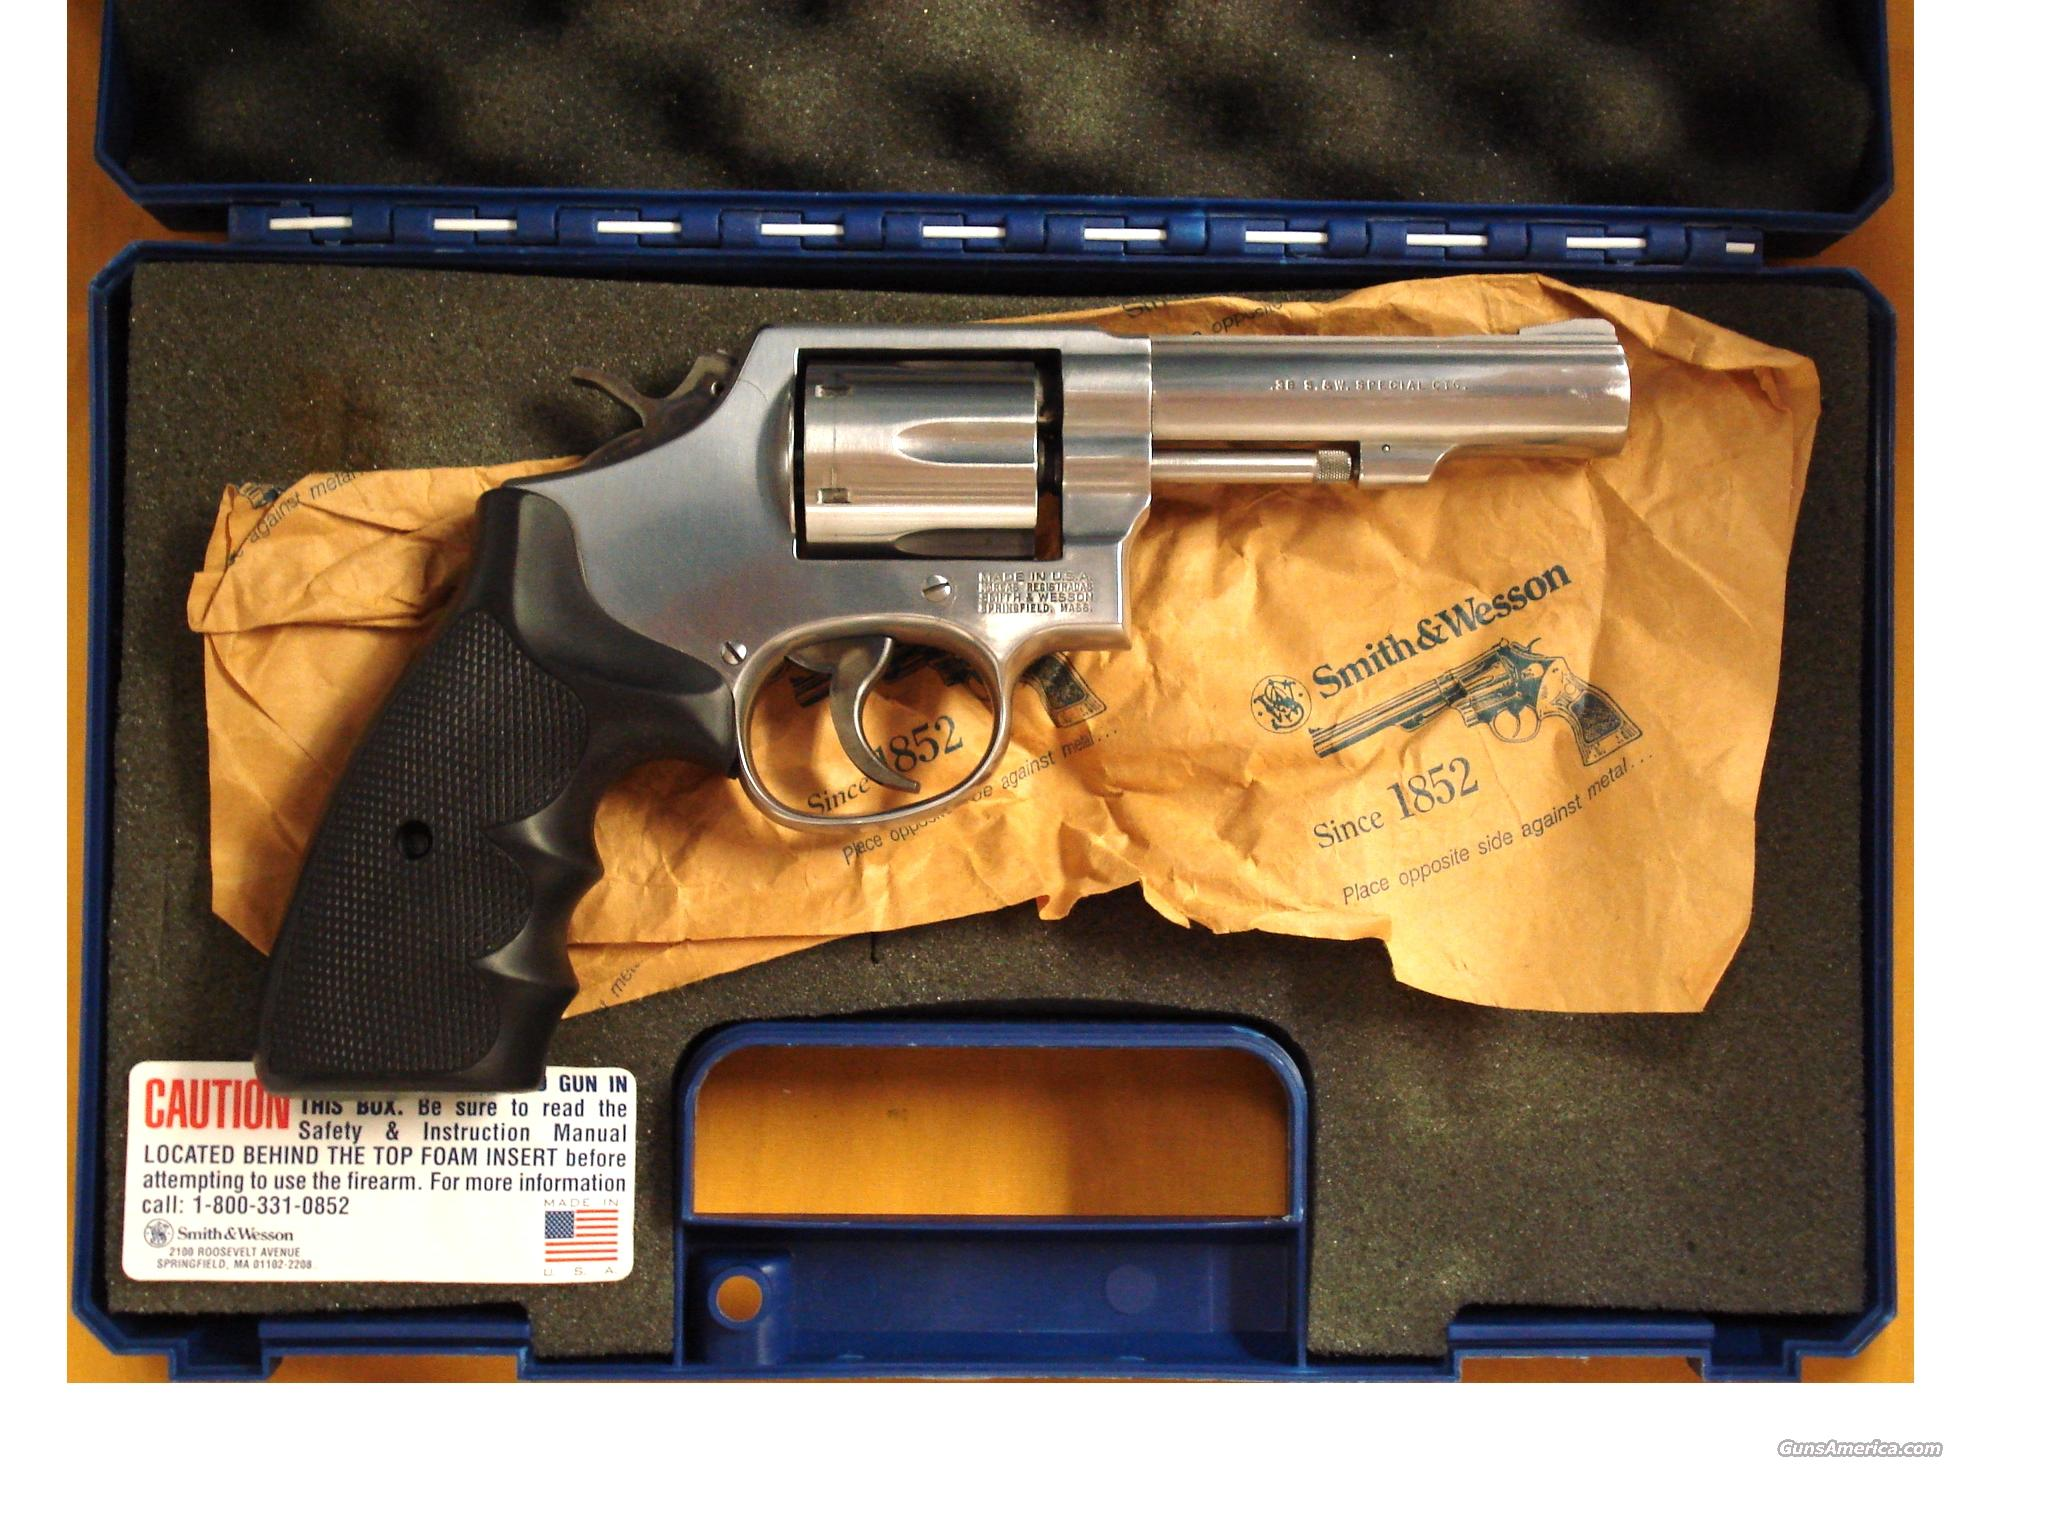 "S&W 64-5 .38 SPL 4"" BARREL  Guns > Pistols > Smith & Wesson Revolvers > Full Frame Revolver"